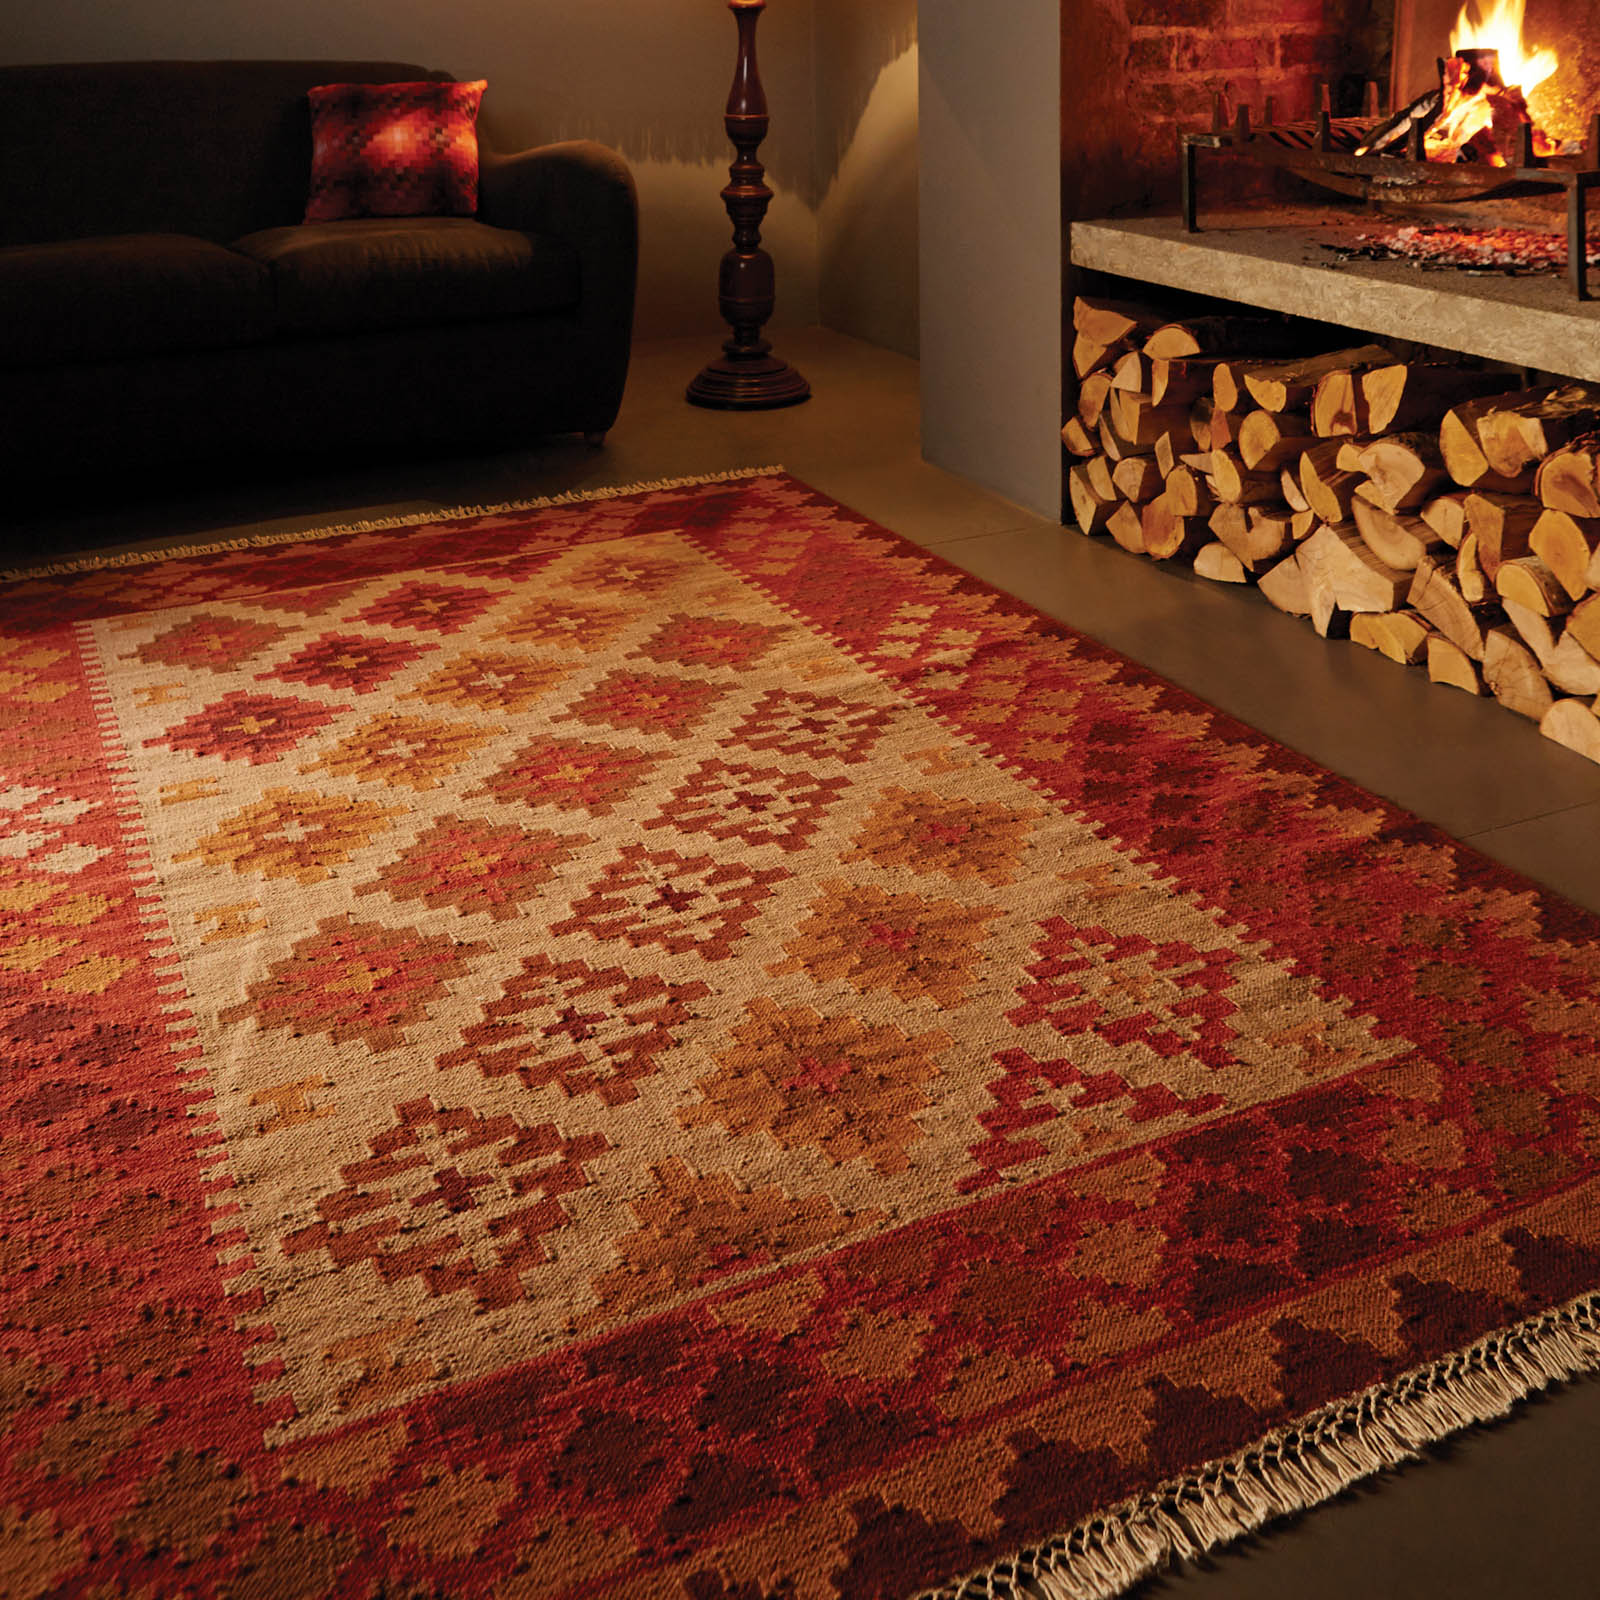 kilim rug on concrete floor next to fireplace and black couch